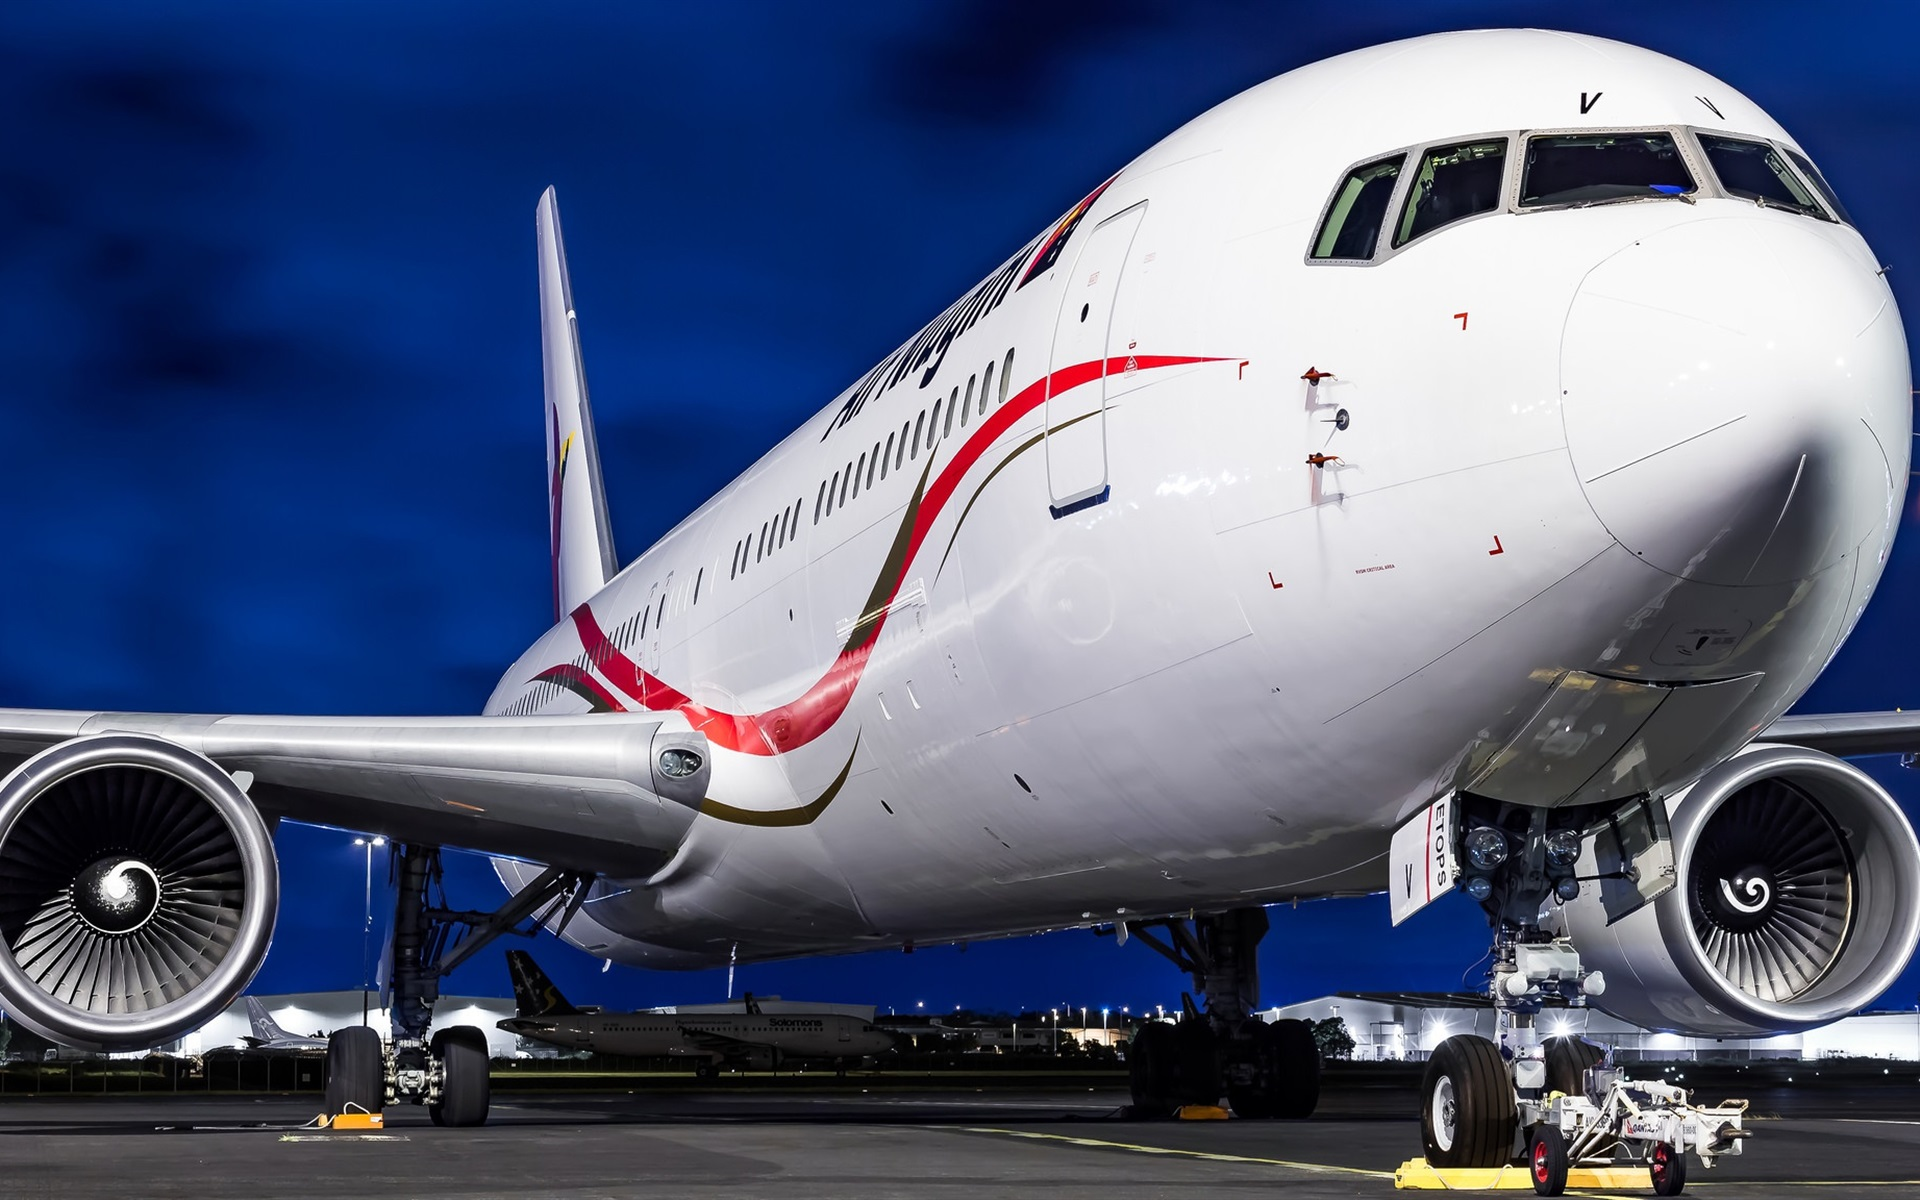 Wallpaper Boeing 767 airliner, airport 1920x1200 HD Picture